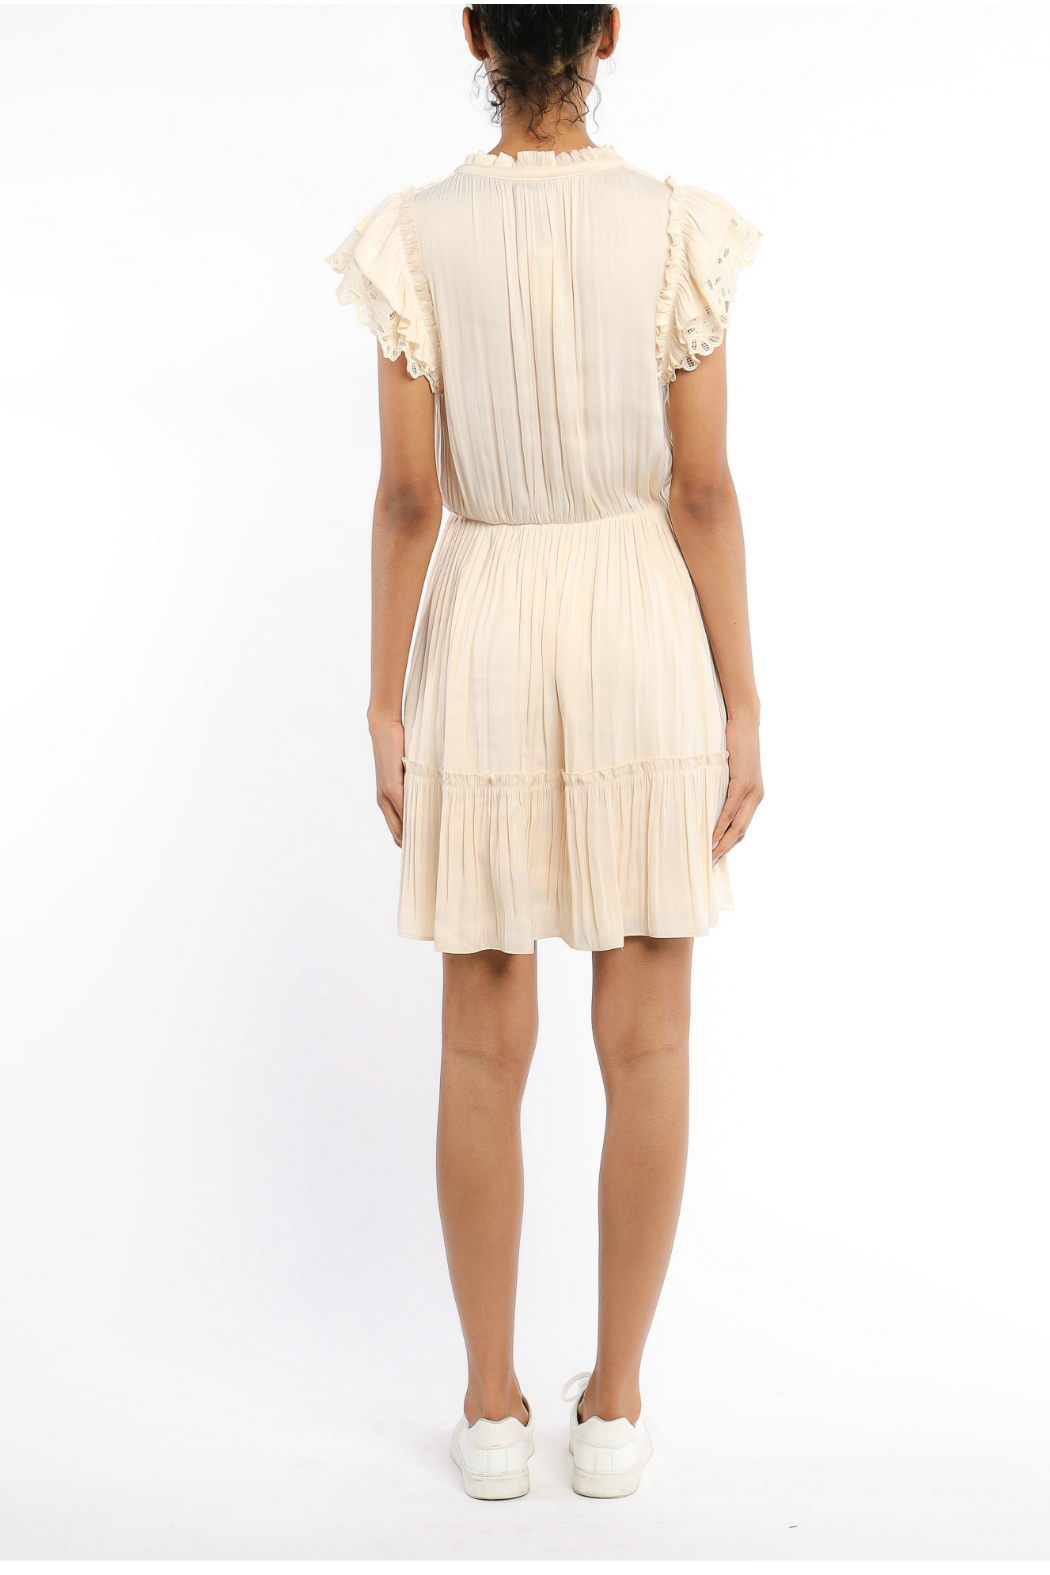 Current Air Lace trimmed short sleeve dress - Front Full Image